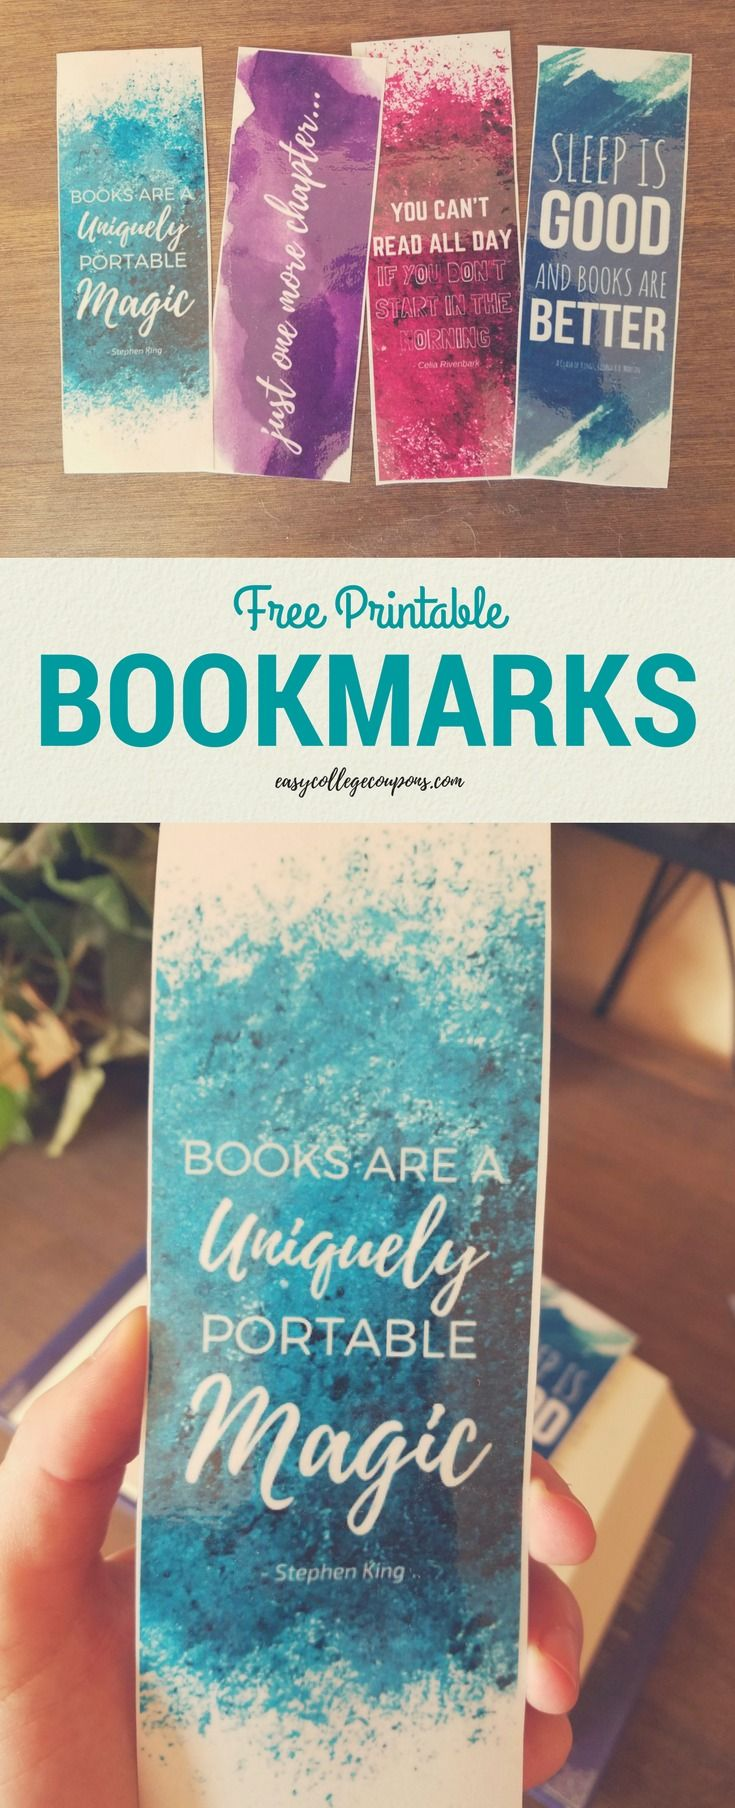 free printable bookmarks with quotes about reading | books and